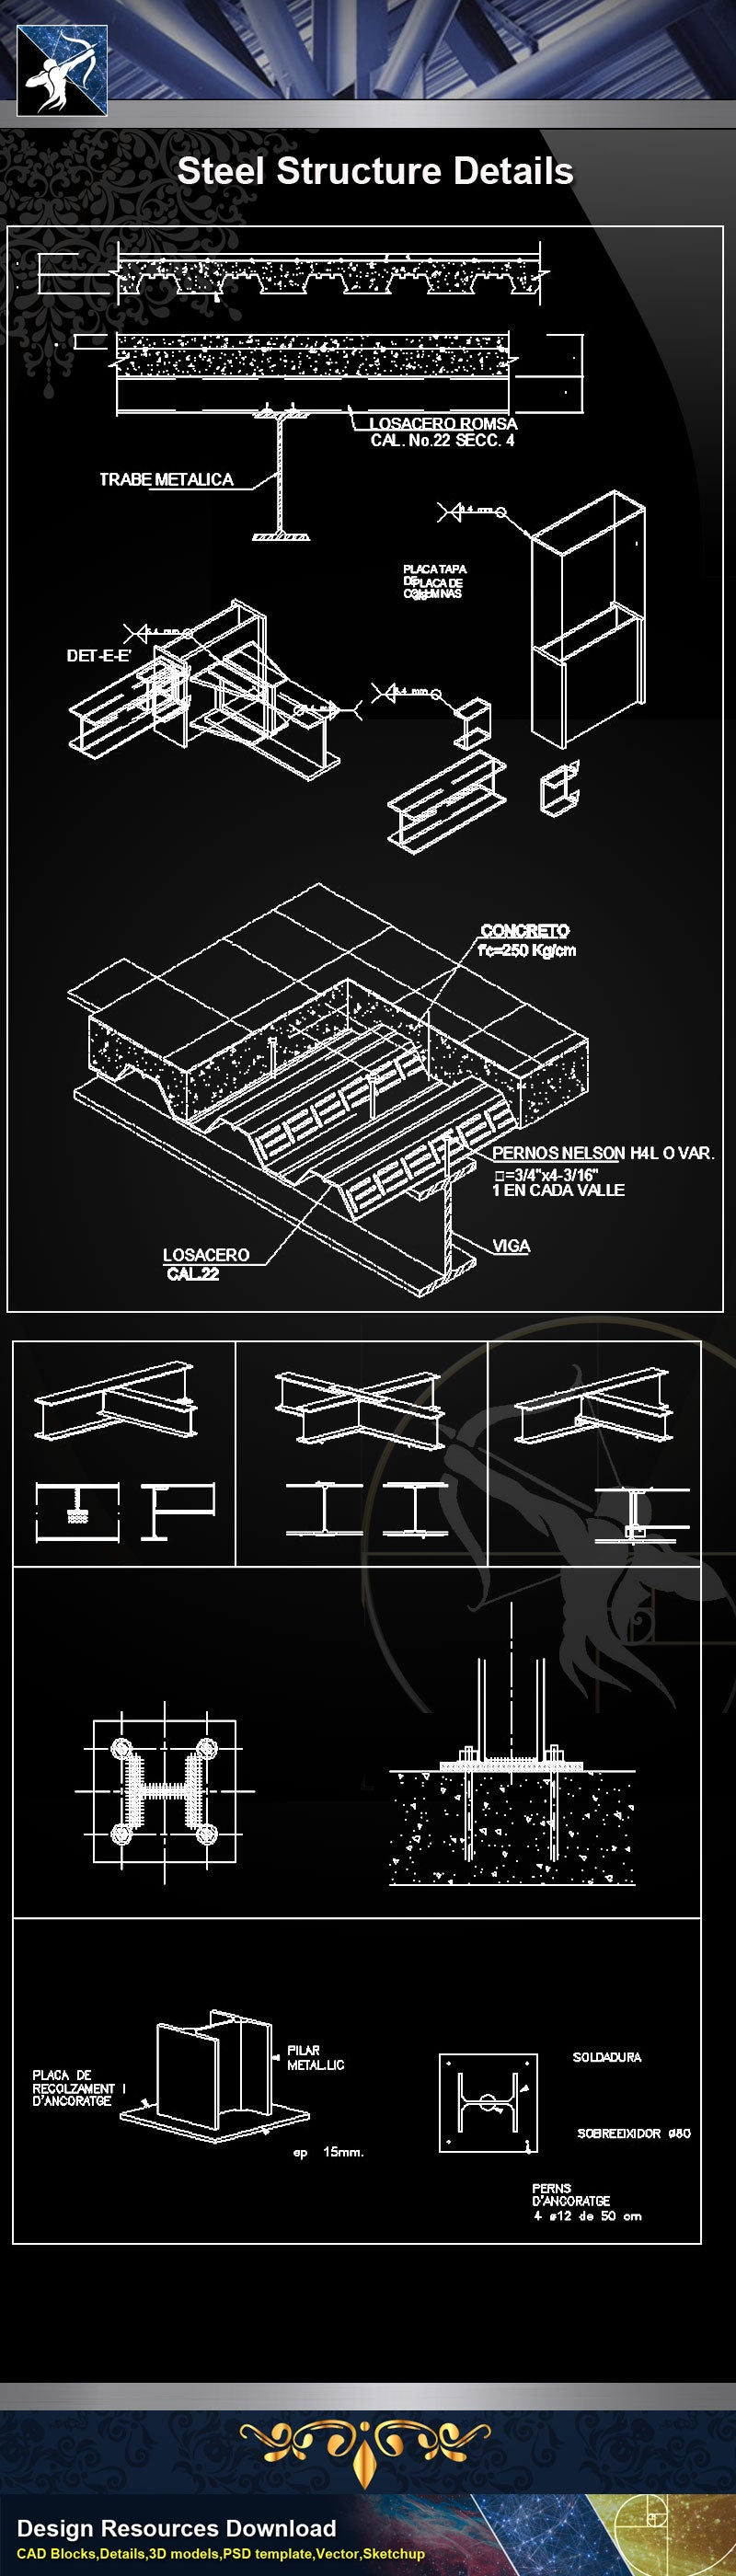 ★【Steel Structure Details】Steel Structure Details Collection V.7